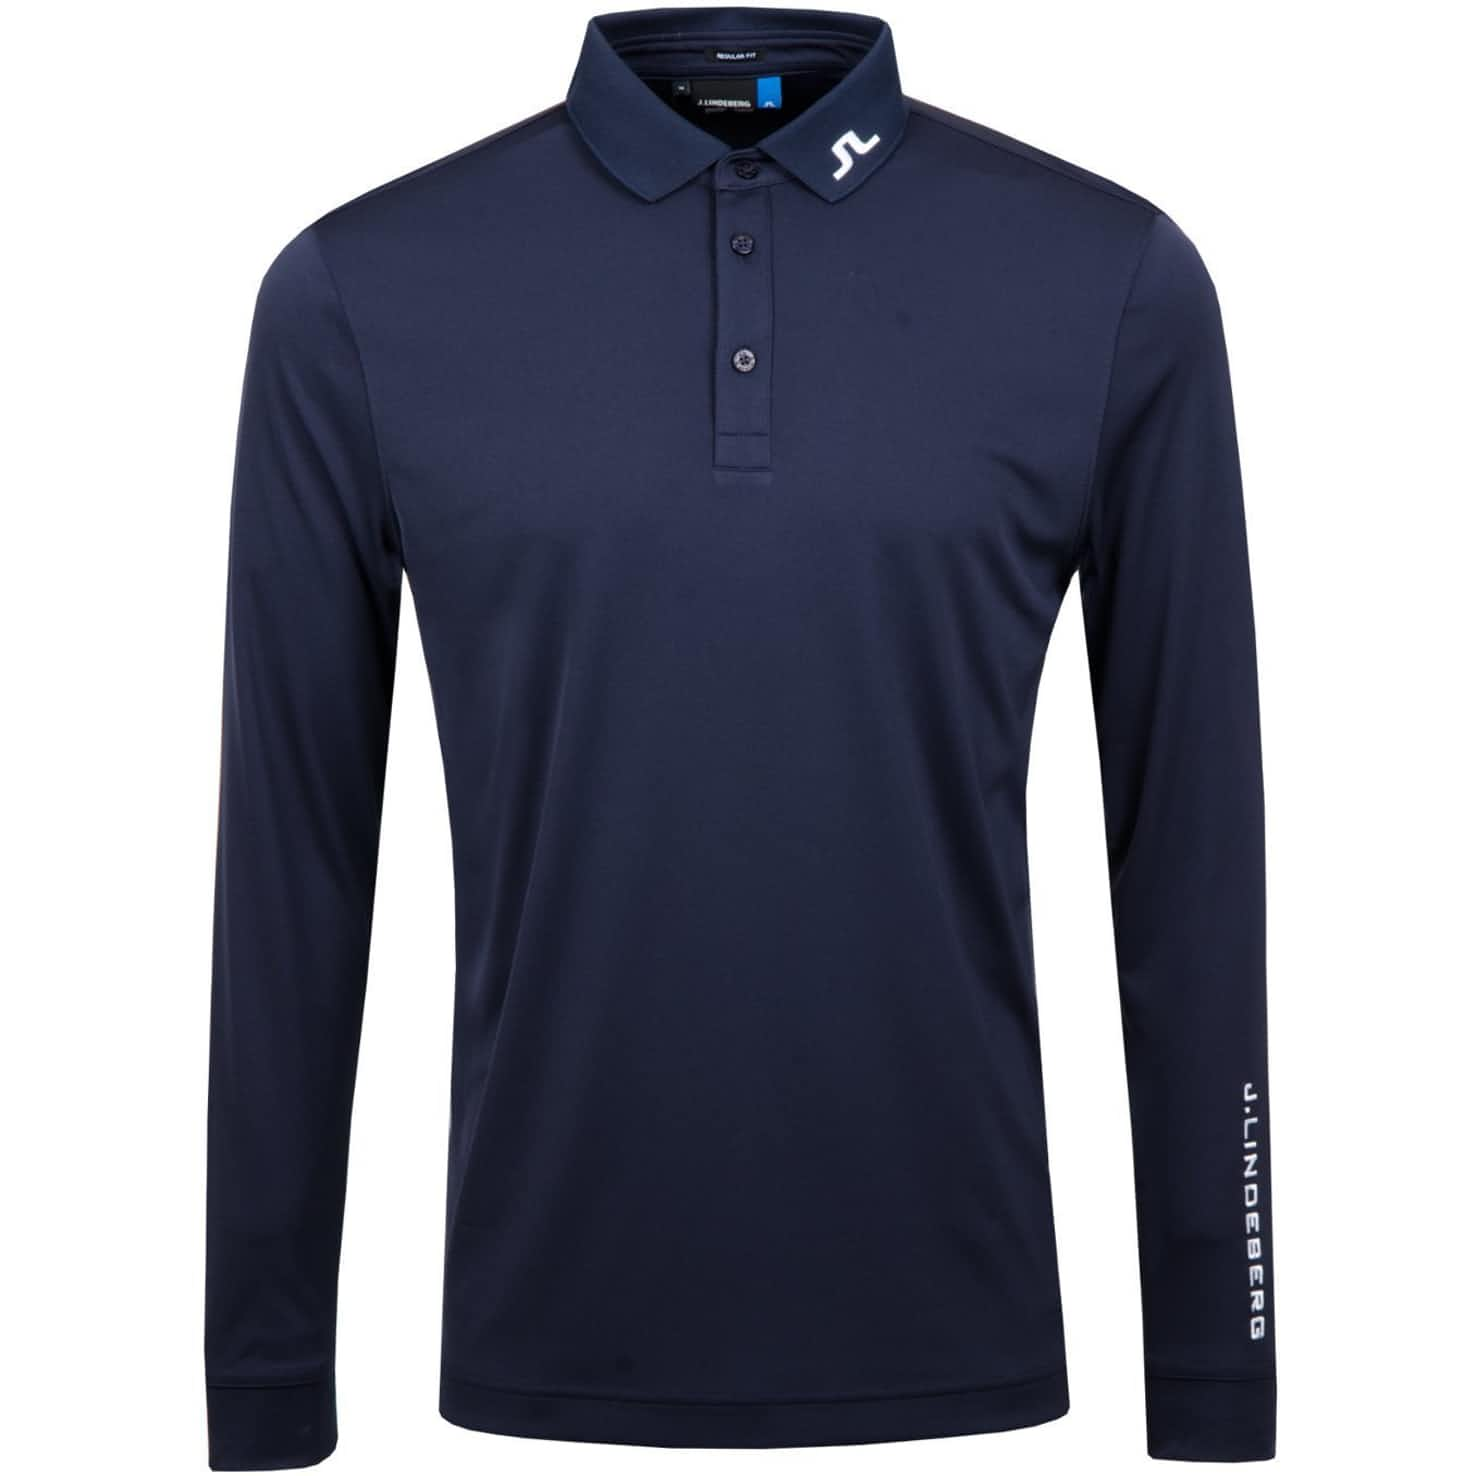 Tour Tech LS Regular Fit TX Jersey JL Navy - 2020